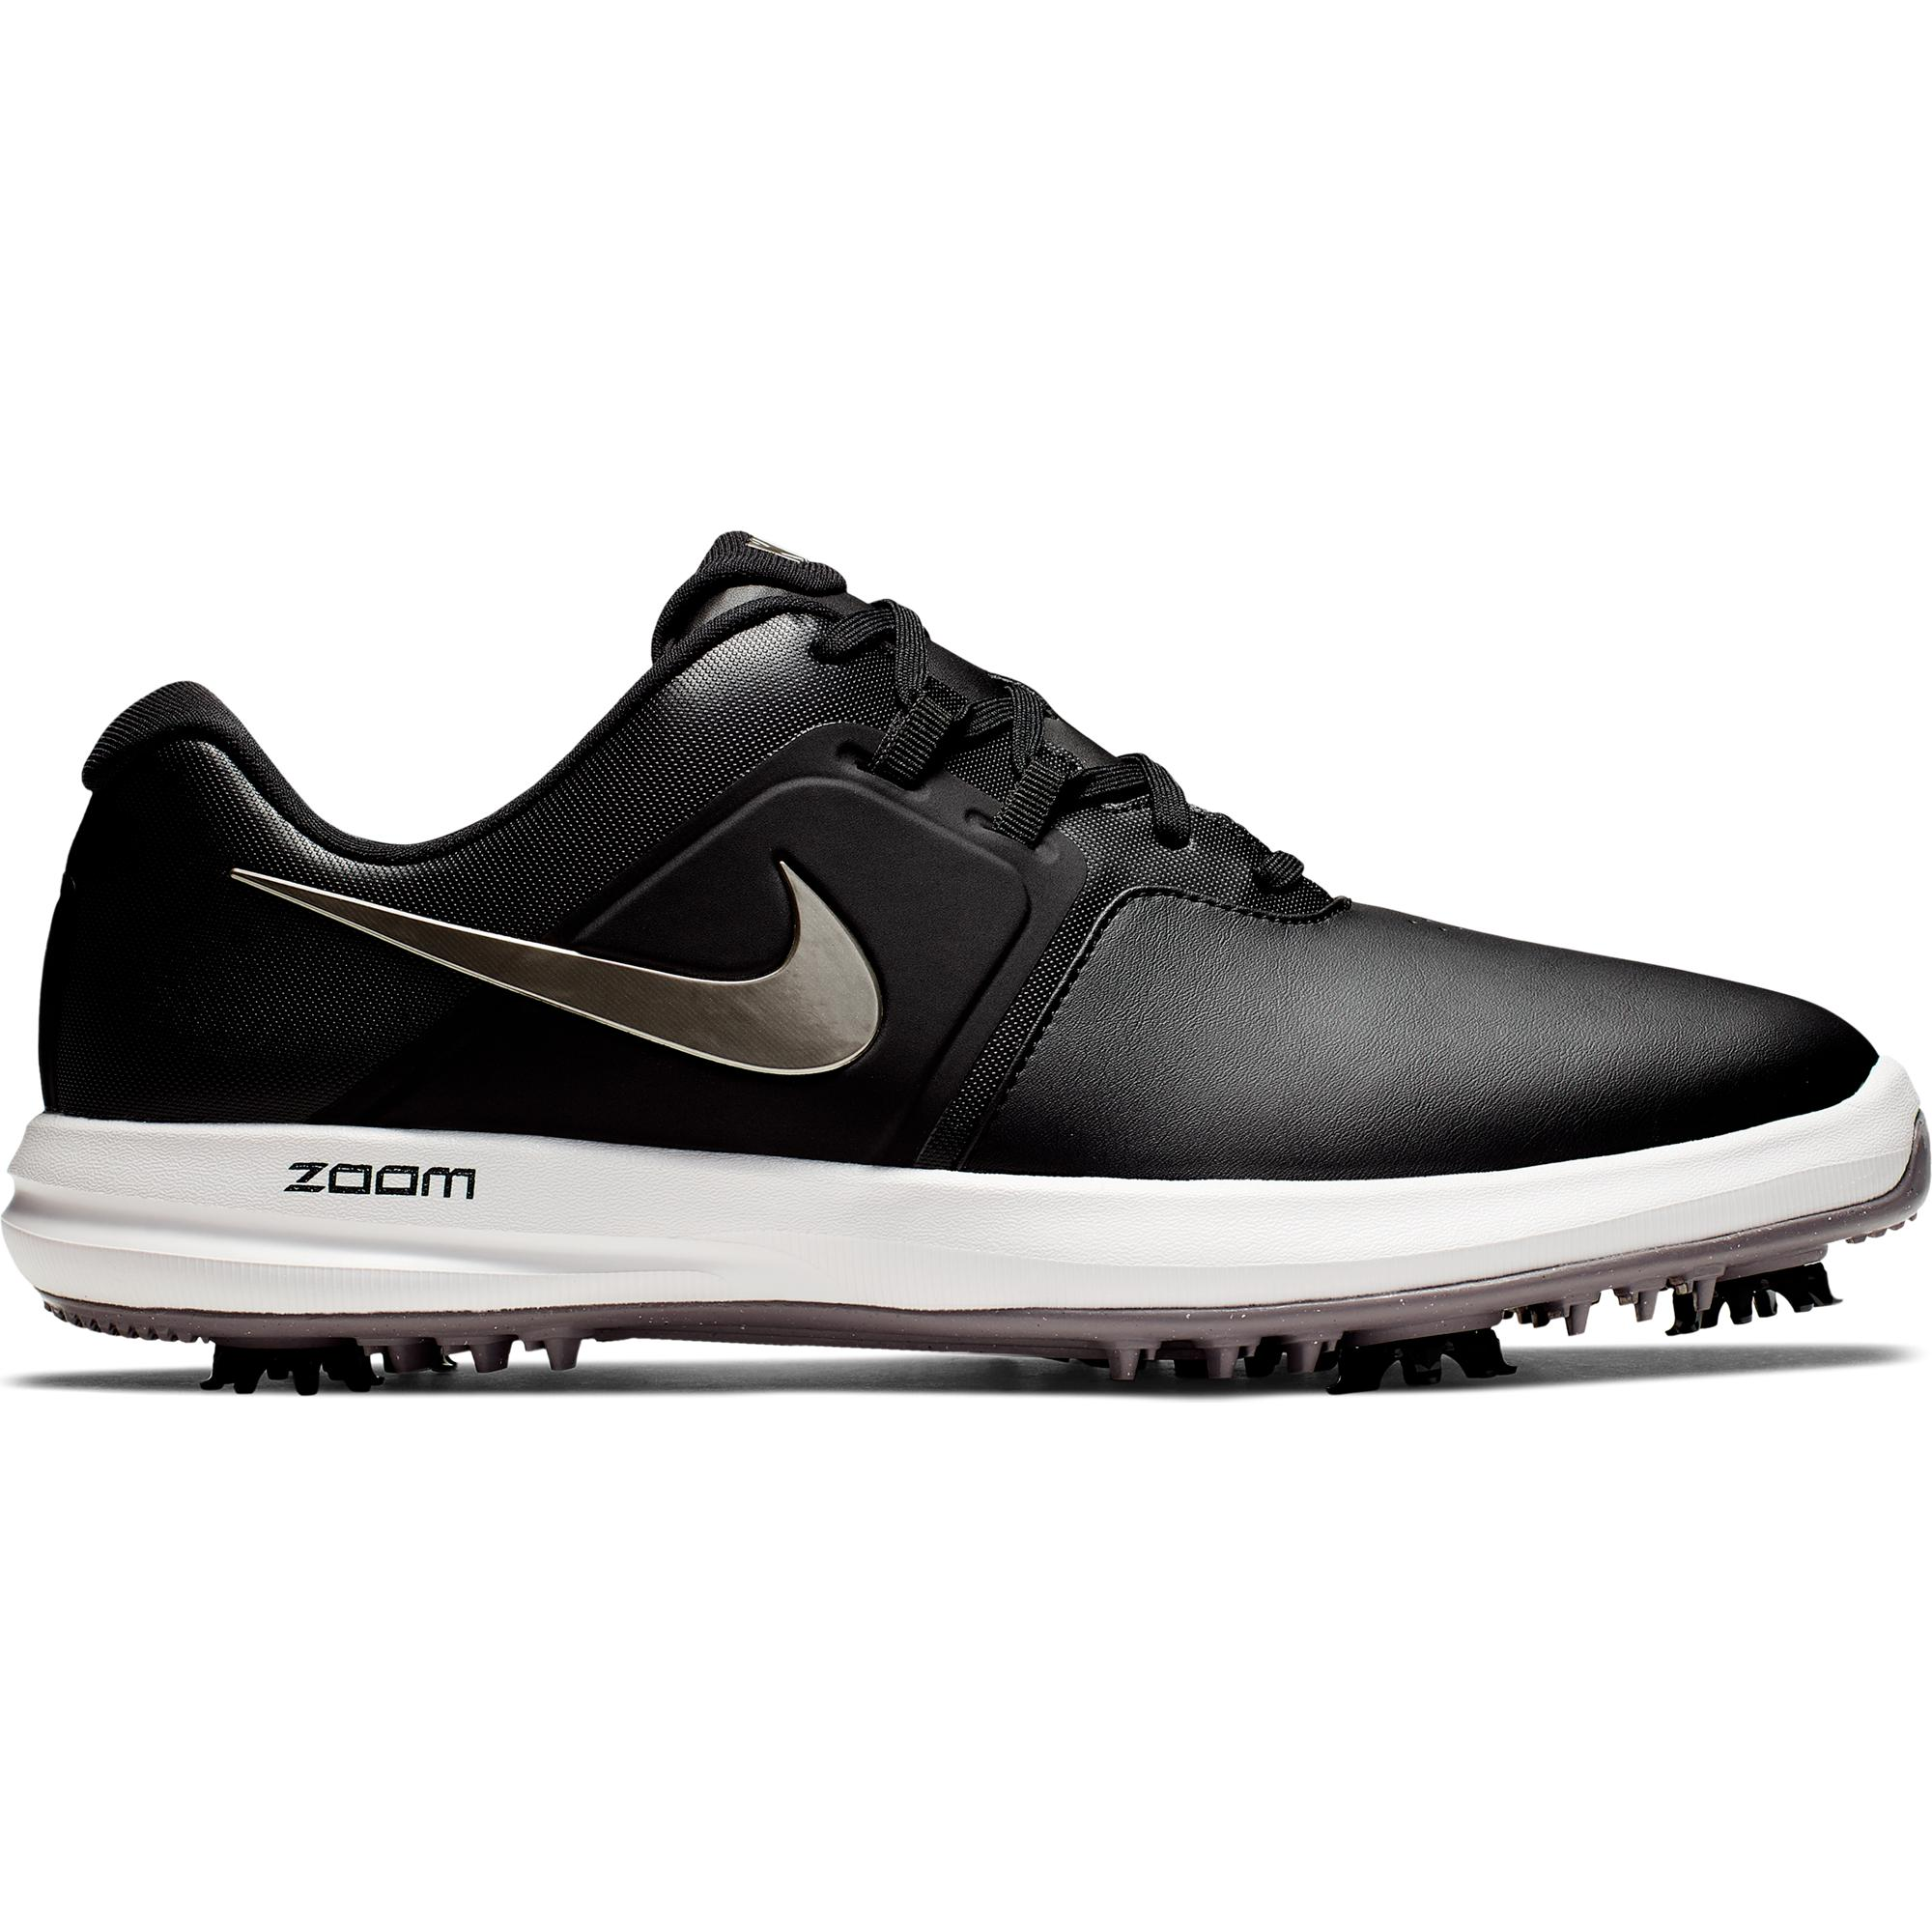 Men's Air Zoom Victory Spiked Golf Shoe - BLACK/SILVER